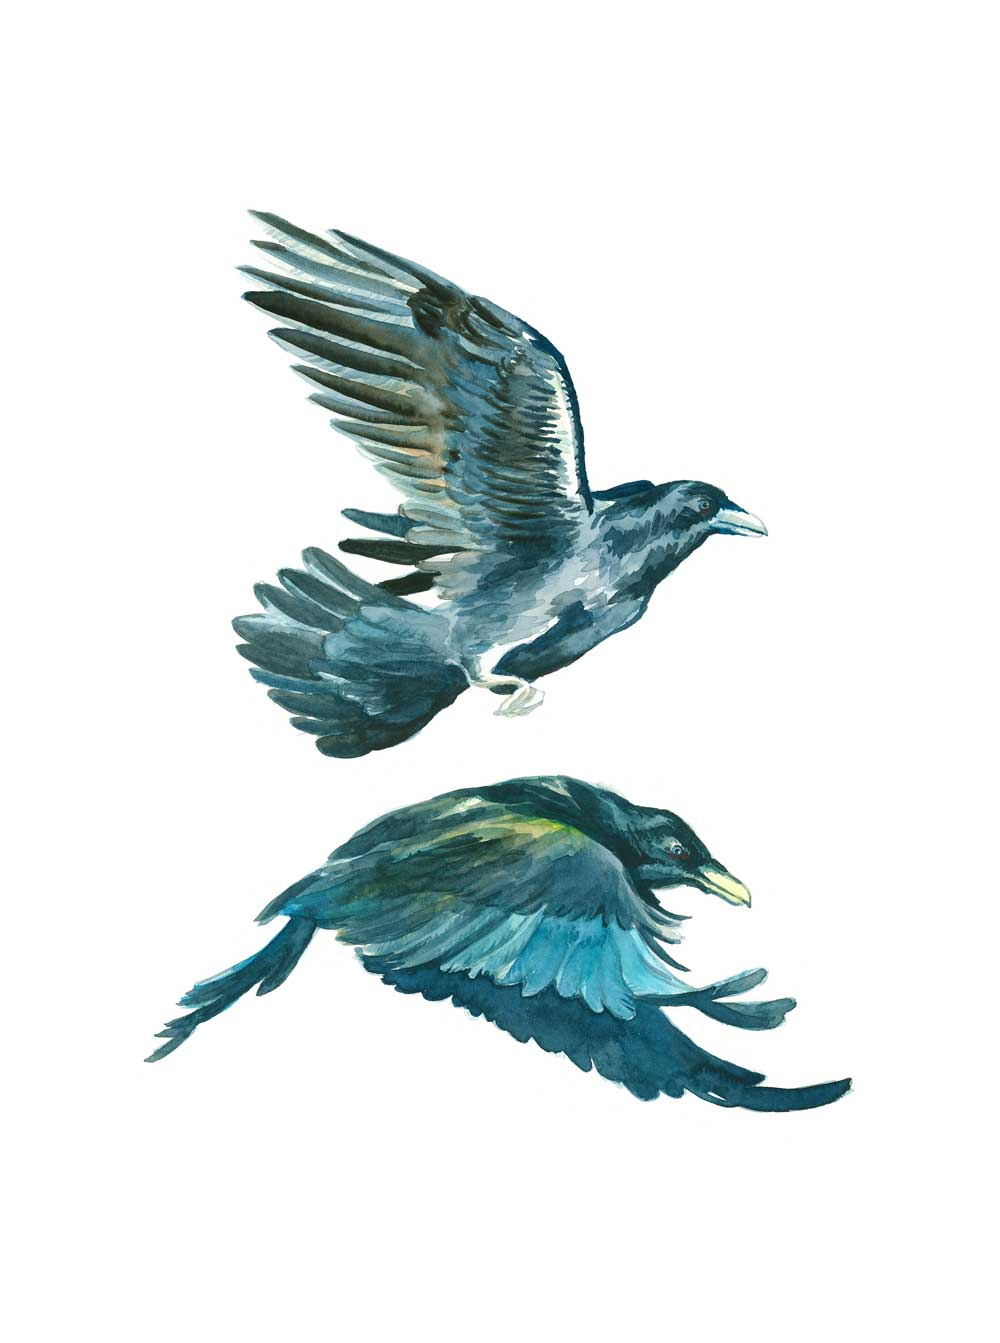 Two Ravens watercolor illustration